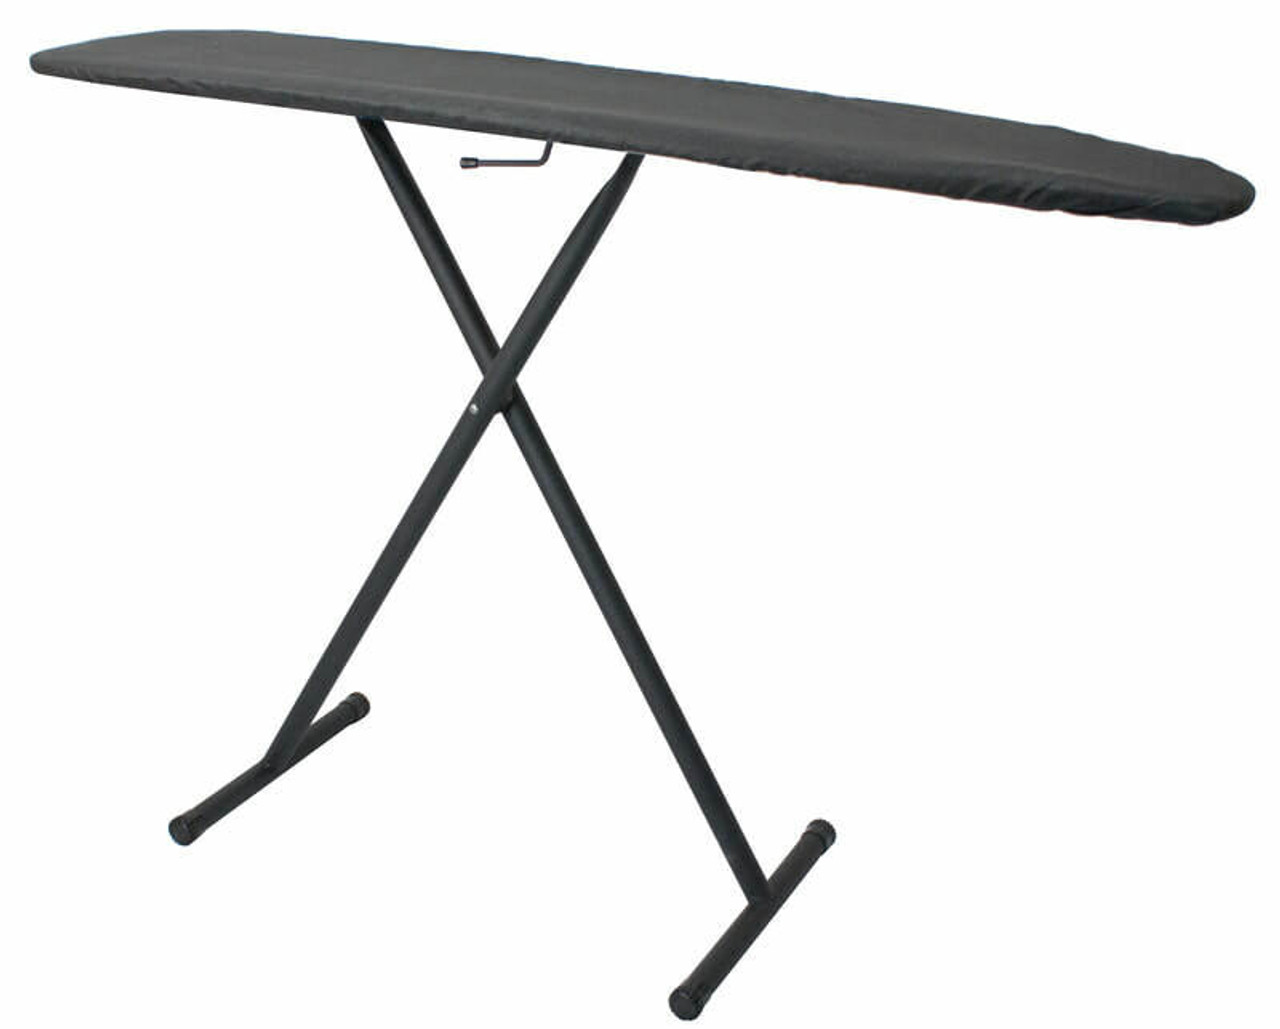 HOSPITALITY 1 SOURCE or BASIC IRONING BOARD - ALL COLORS